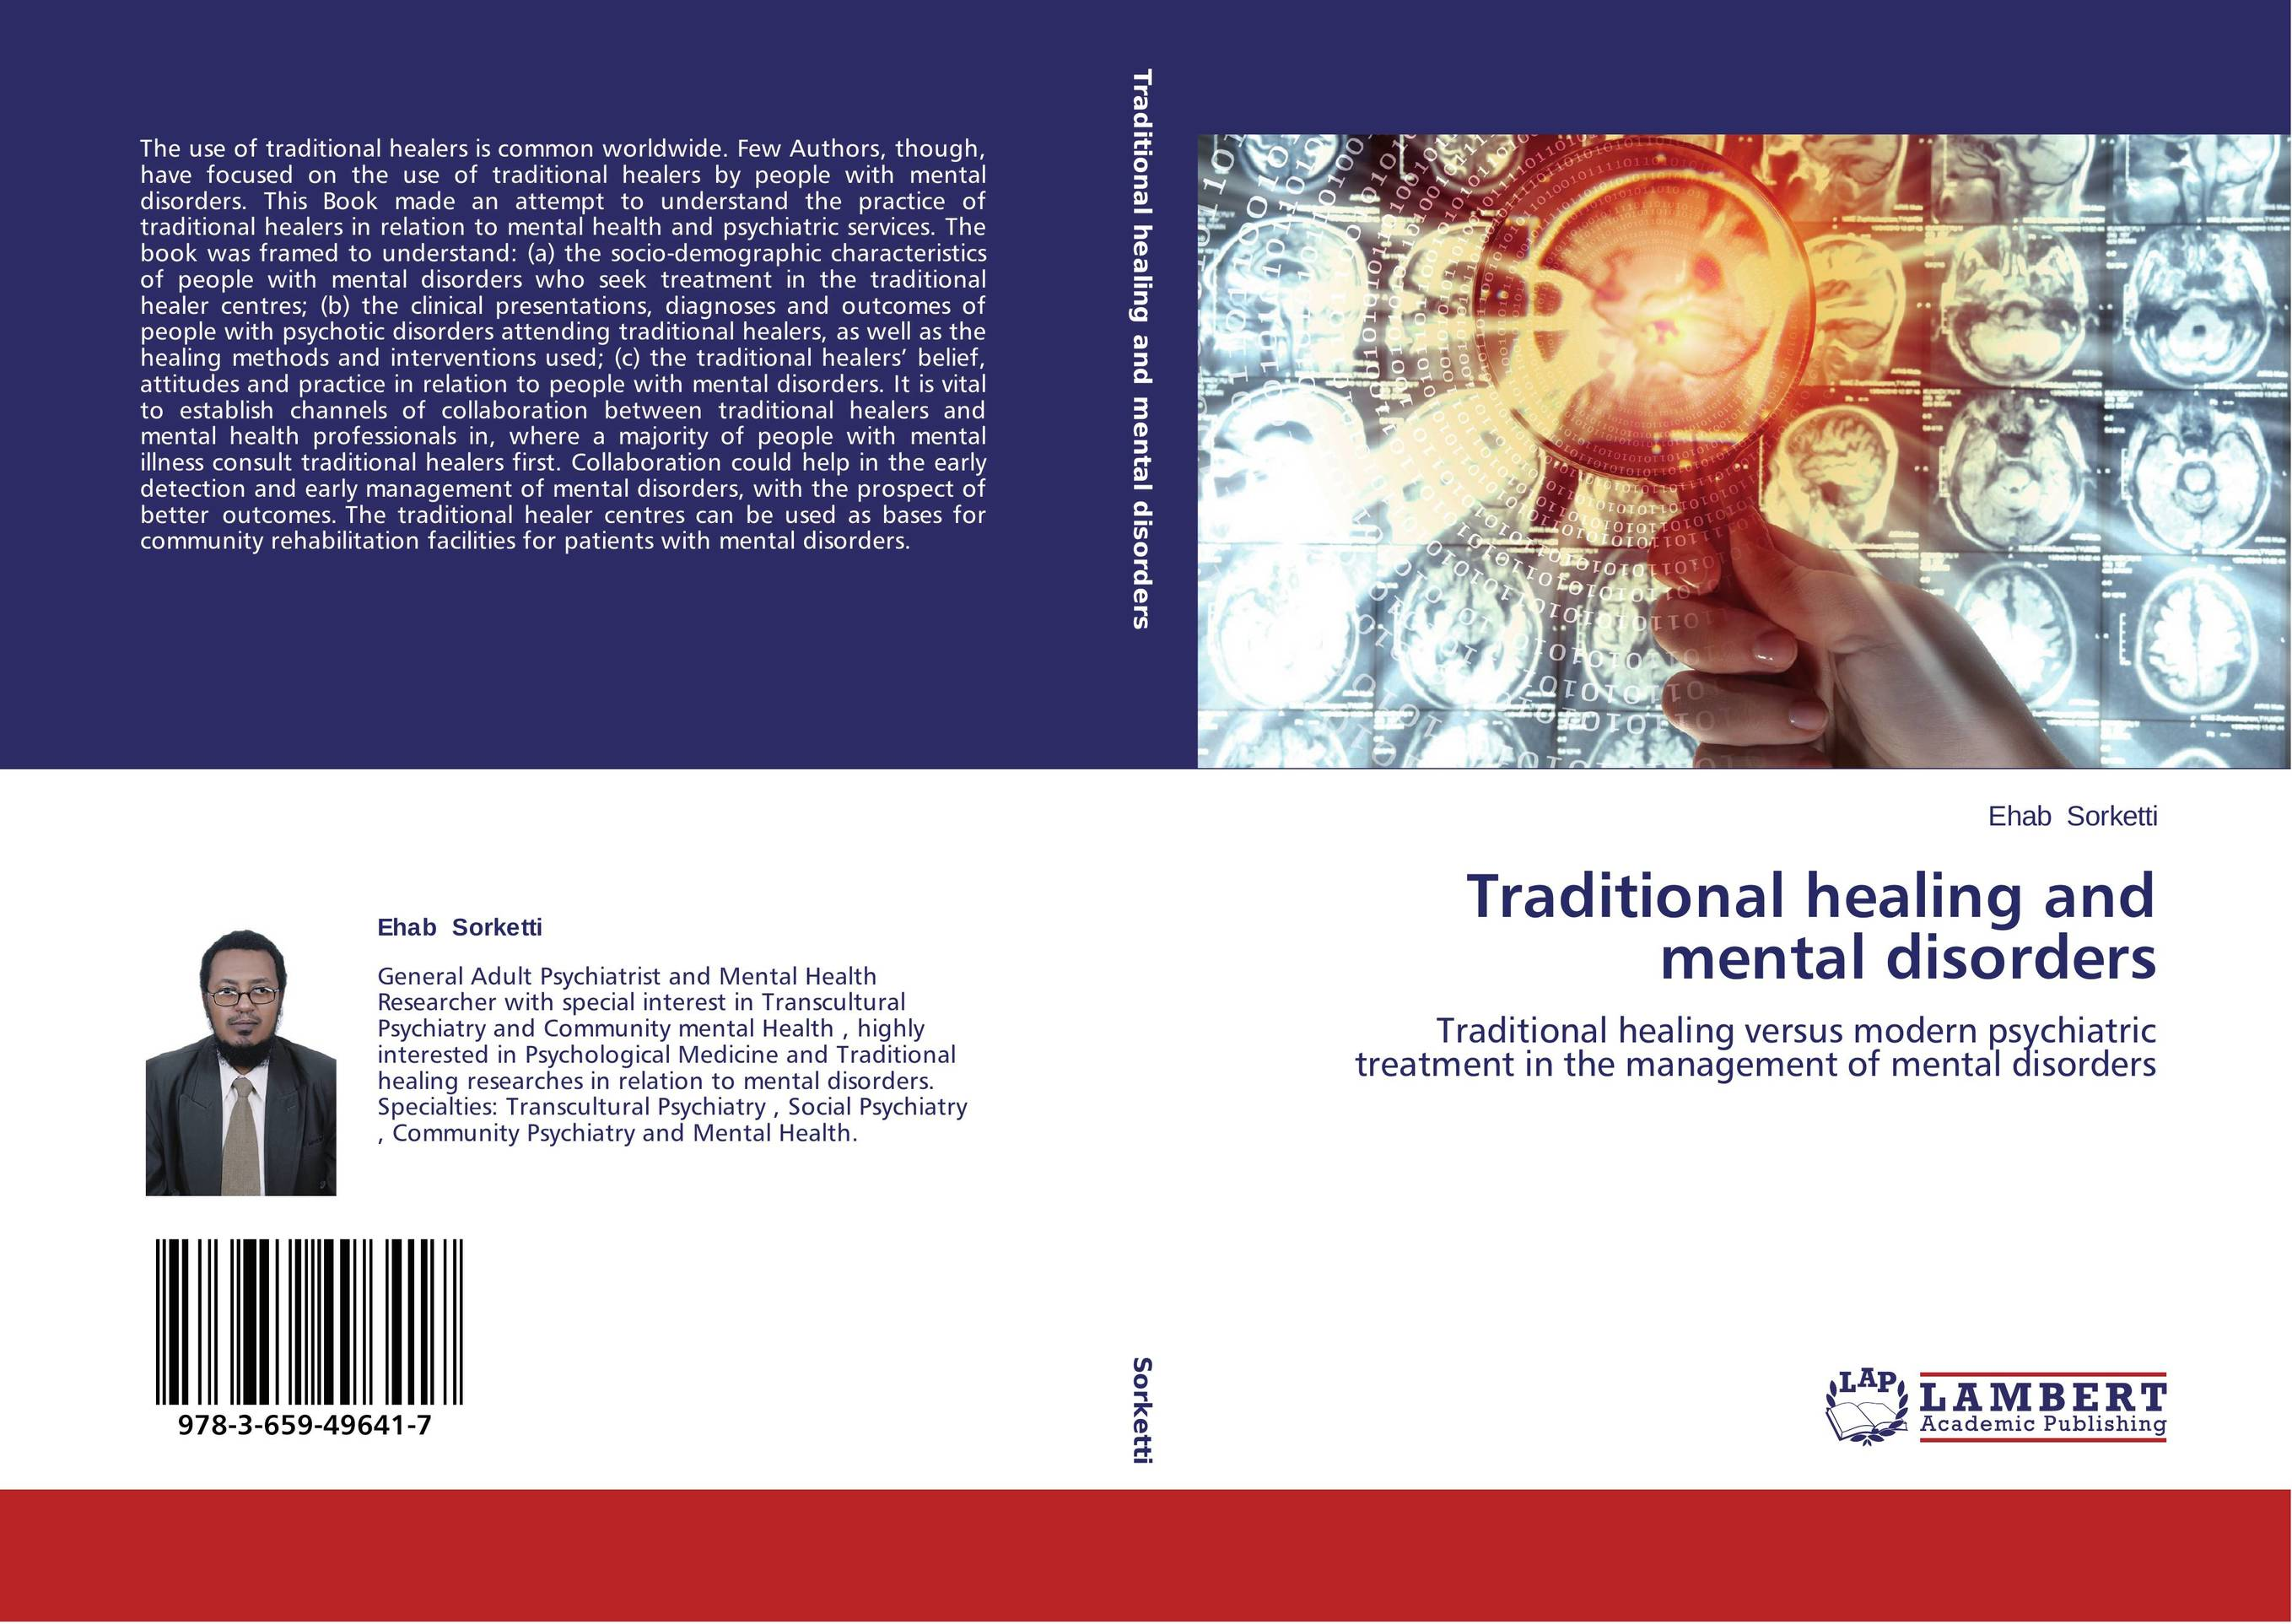 epidemiology psychiatry and mental health professionals Social psychiatry and psychiatric epidemiology is intended to provide a medium for the prompt health service research, health economies or public mental health.